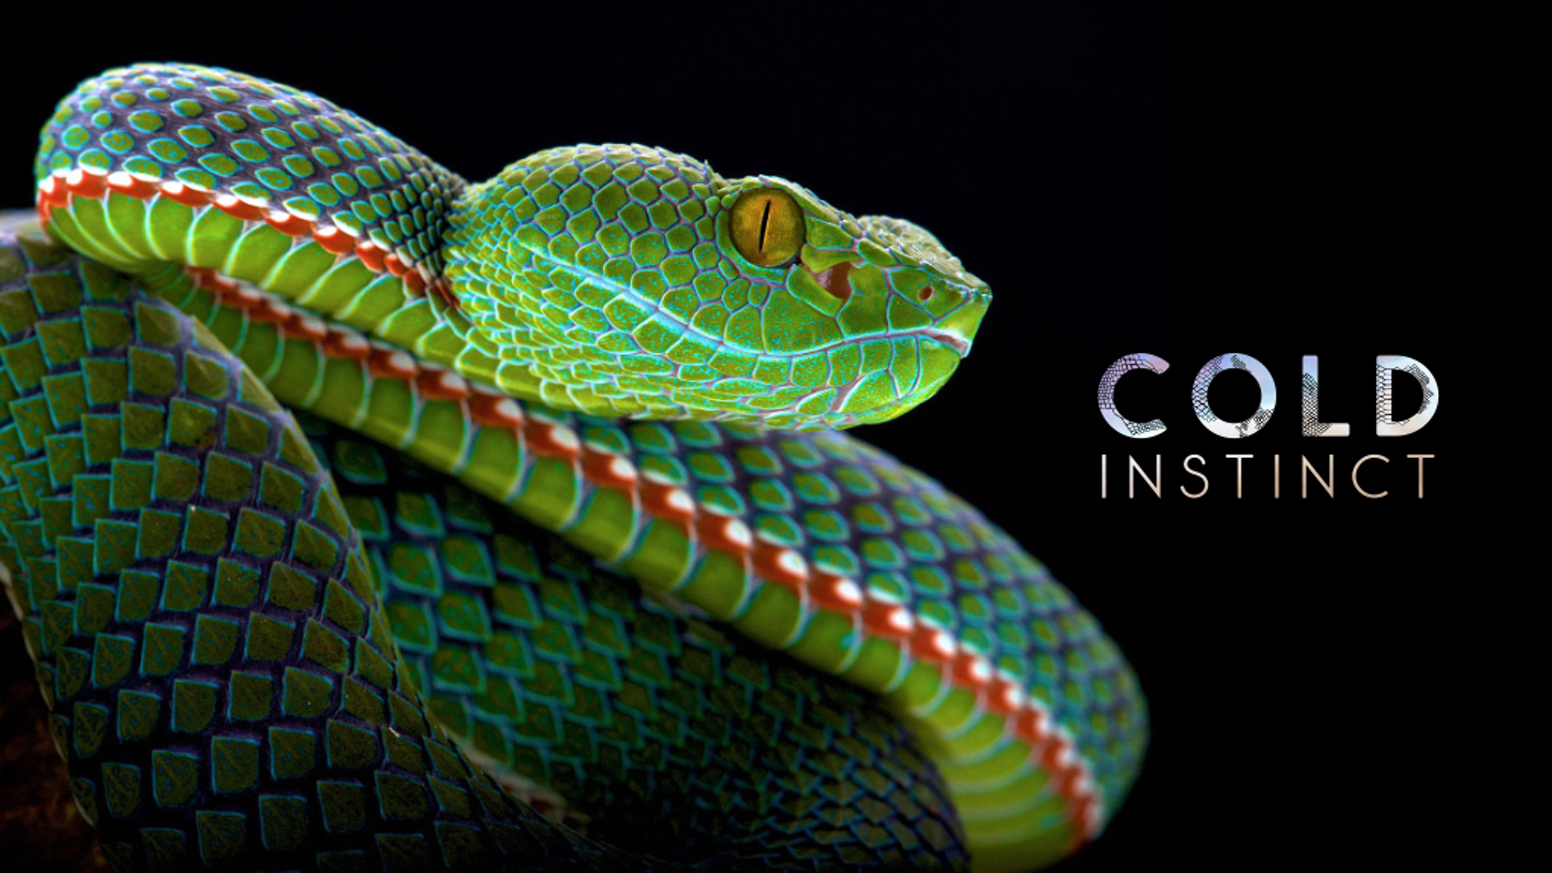 �A beautiful photographic book featuring bizarre shots of snakes, iguanas, geckos, frogs & more. �